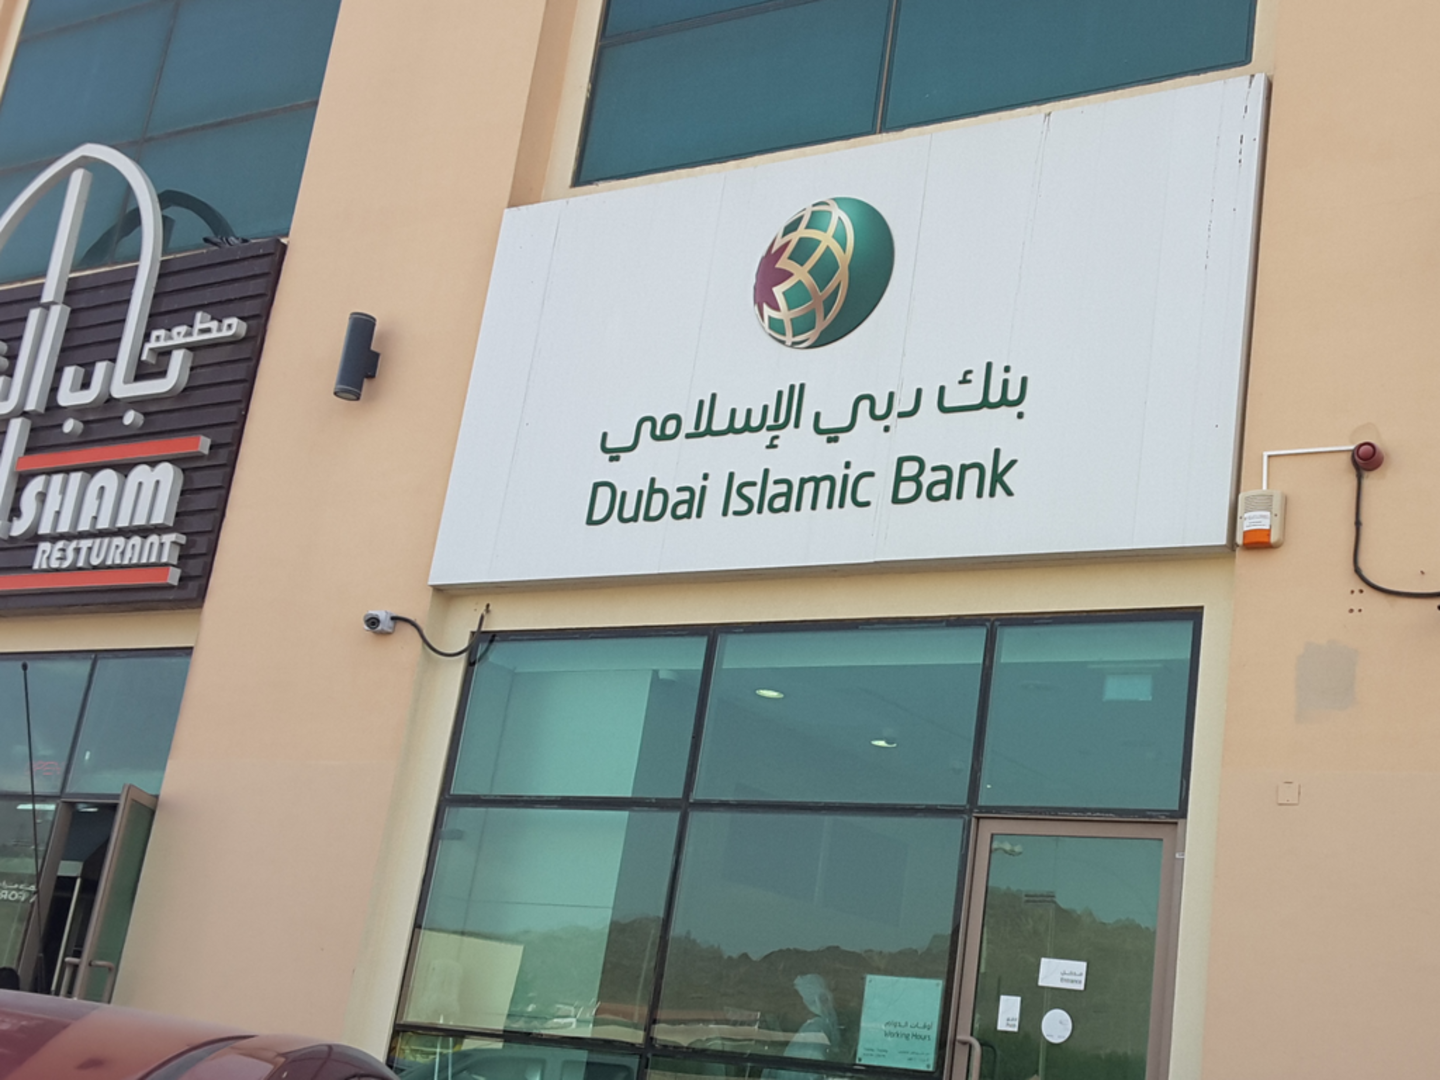 HiDubai-business-dubai-islamic-bank-finance-legal-banks-atms-hatta-dubai